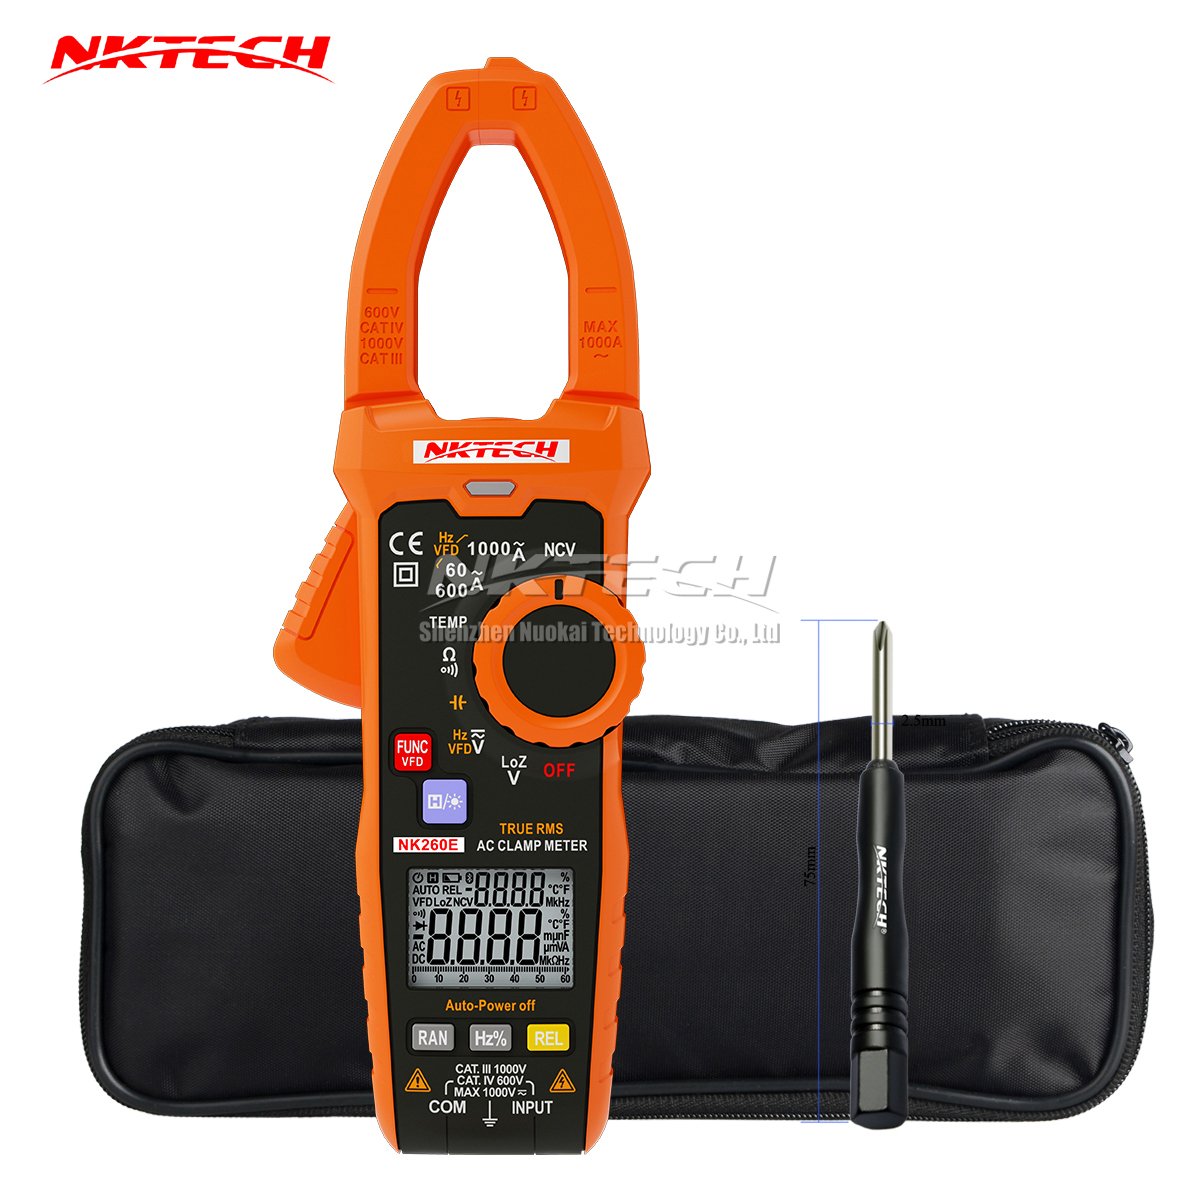 NKTECH NK260E Digital Clamp Meter 1000V VFD Analogue Bar Graph Ture RMS Temperature AC DC V ACA Resistance Frequency Capacitance fashlight nktech super bright nk 9t6 9x